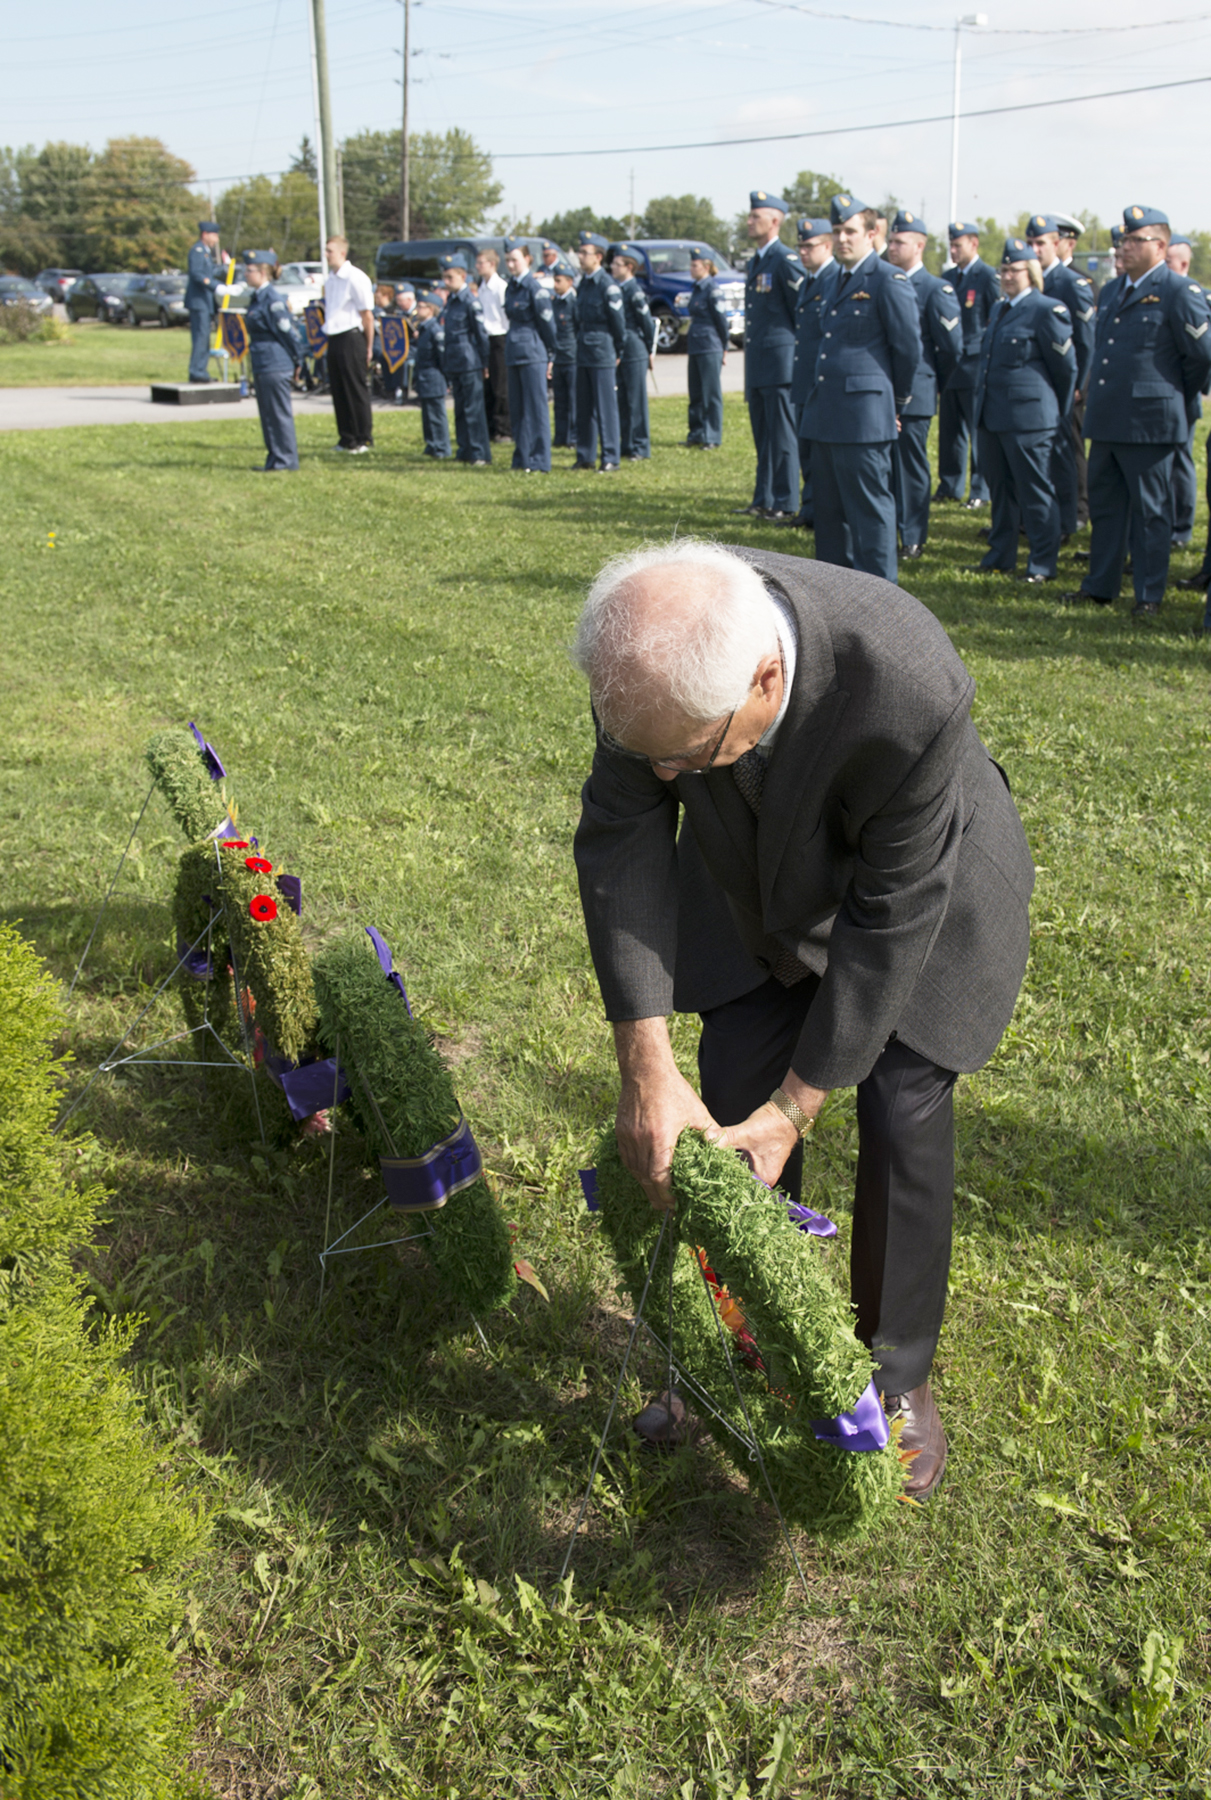 Lou Rinaldi, Member of Provincial Parliament for Northumberland/Quinte West, lays a wreath at the cenotaph during the 8 Wing Trenton, Ontario, Battle of Britain parade held at the 413 (Air Commodore Leonard Birchall) Wing Air Force Association of Canada on September 18, 2016. PHOTO: Corporal Owen W. Budge, TN10-2016-0688-015